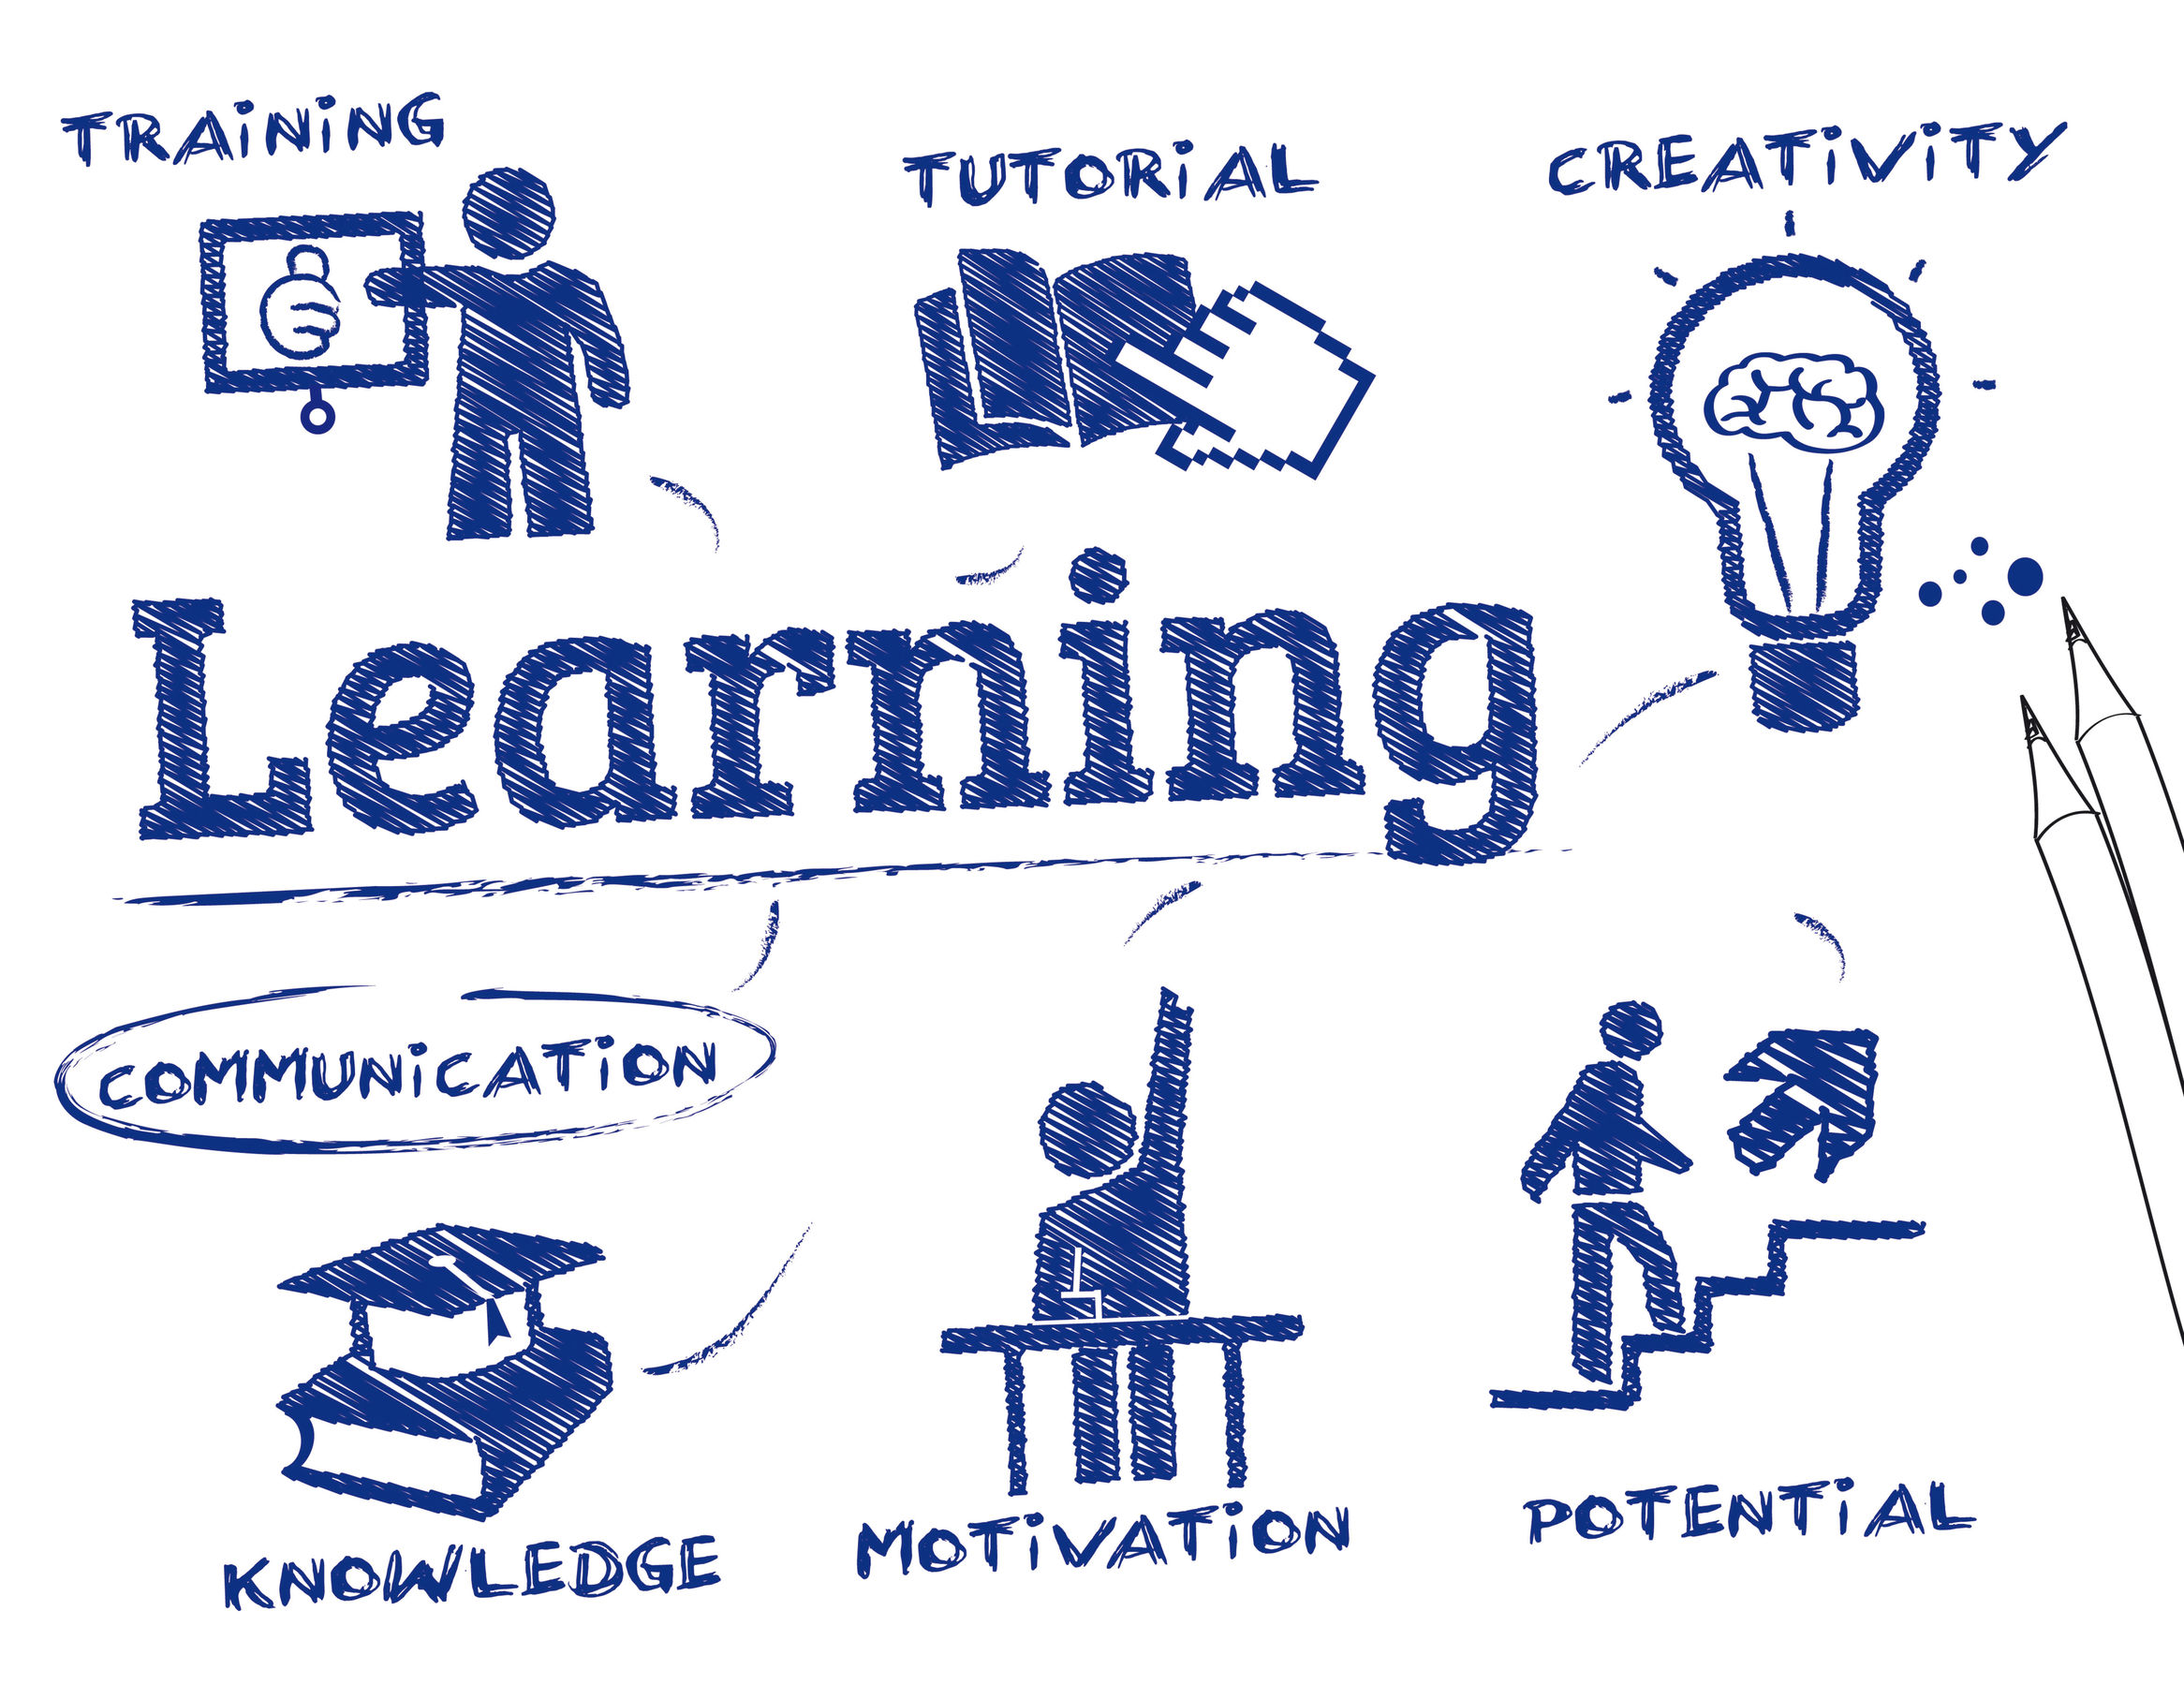 Learning and development, not just training